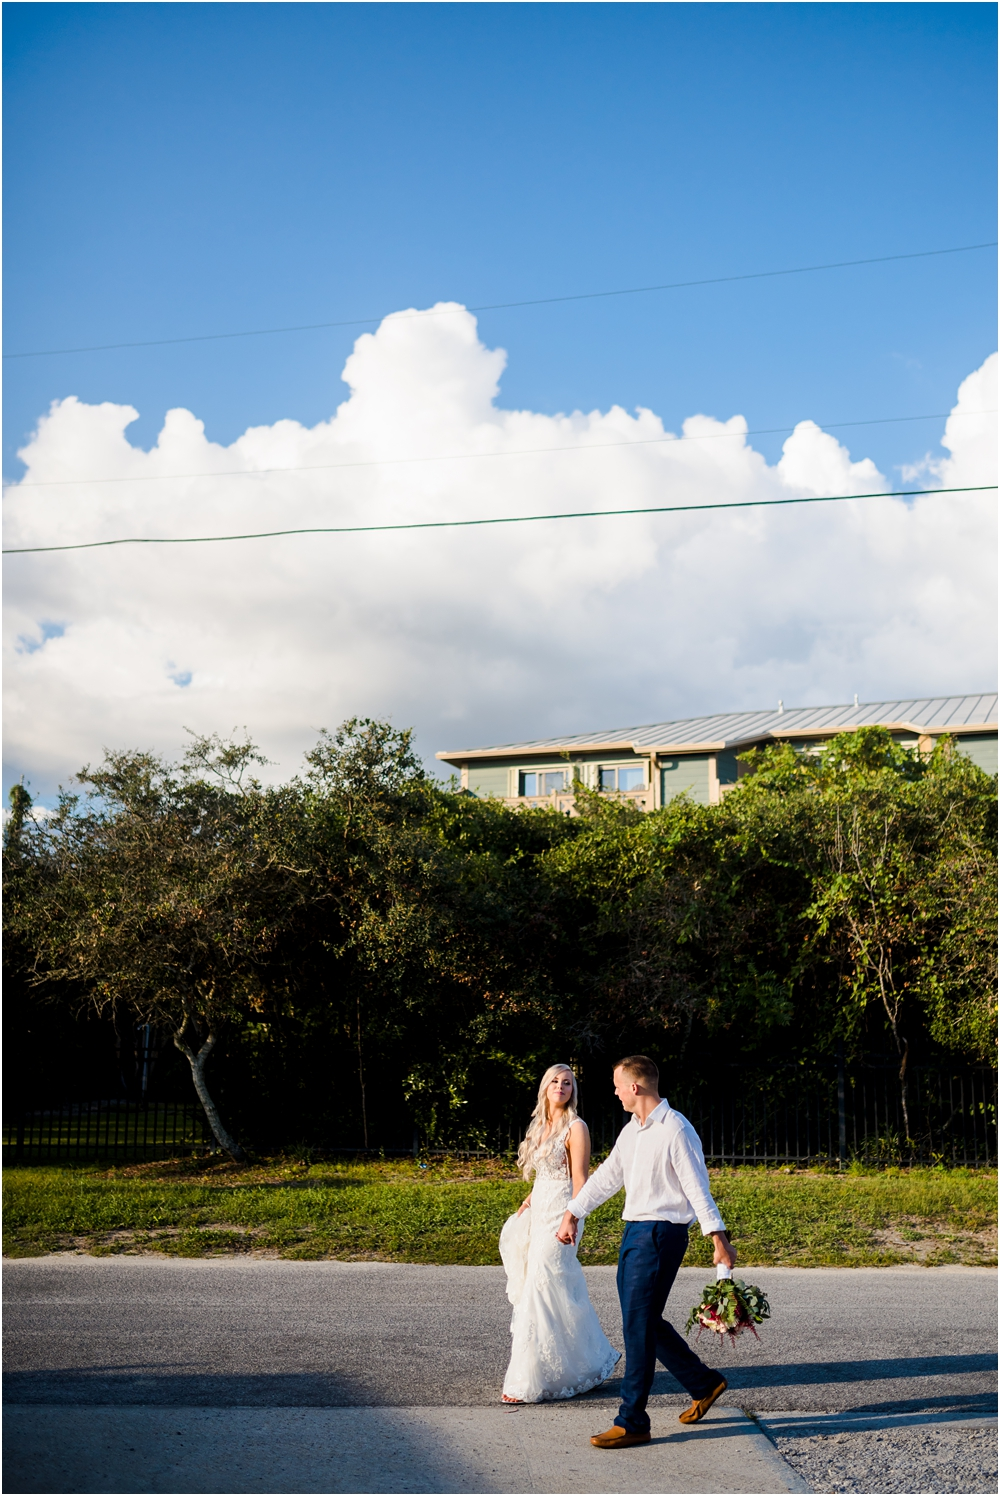 mcglothlin-wedding-kiersten-stevenson-photography-30a-panama-city-beach-dothan-tallahassee-(72-of-145).jpg